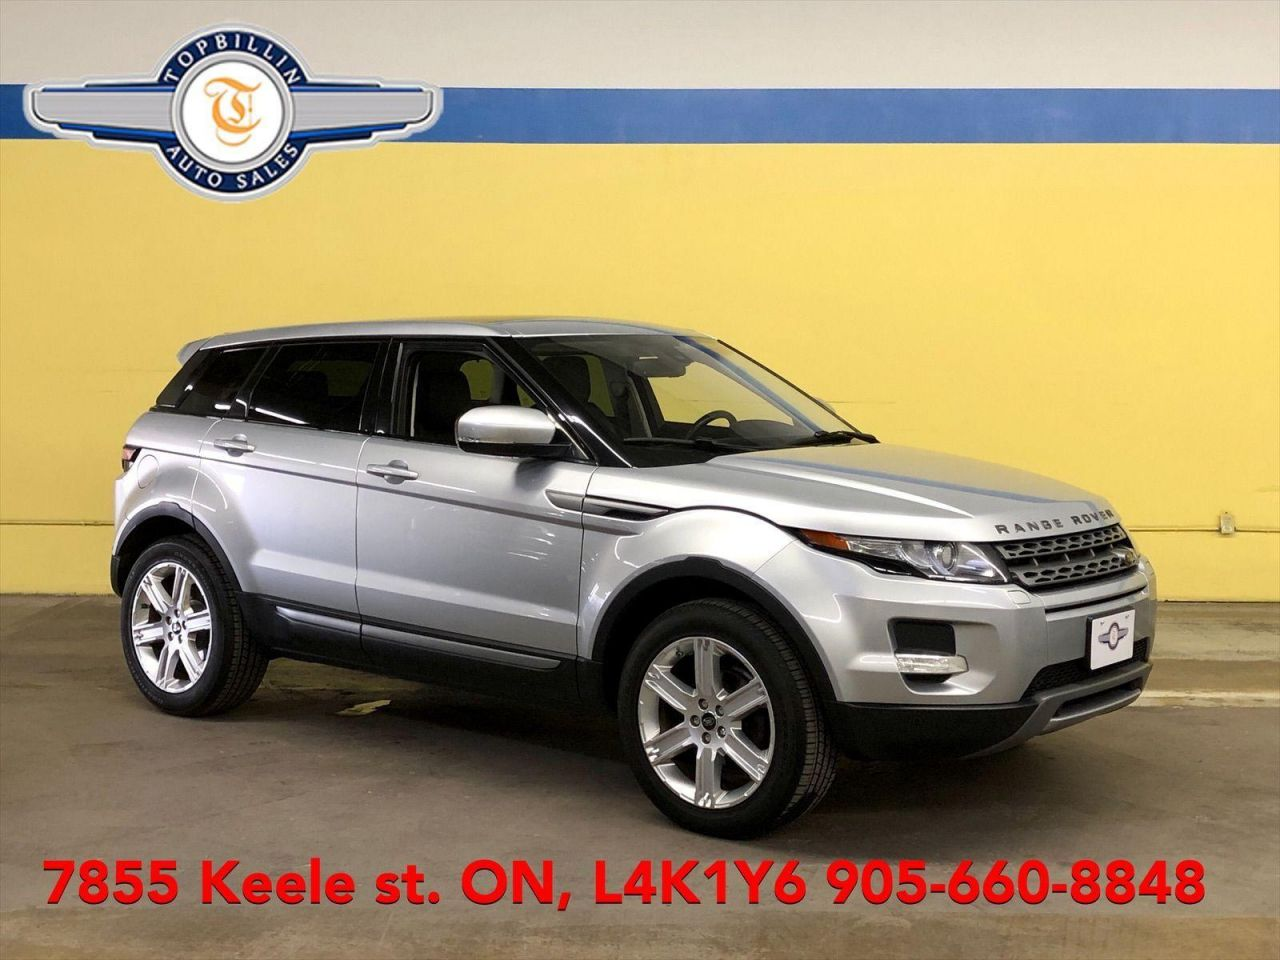 2013 Land Rover Range Rover Evoque Pure Plus AWD, Panoramic Roof, 2 Years Warranty